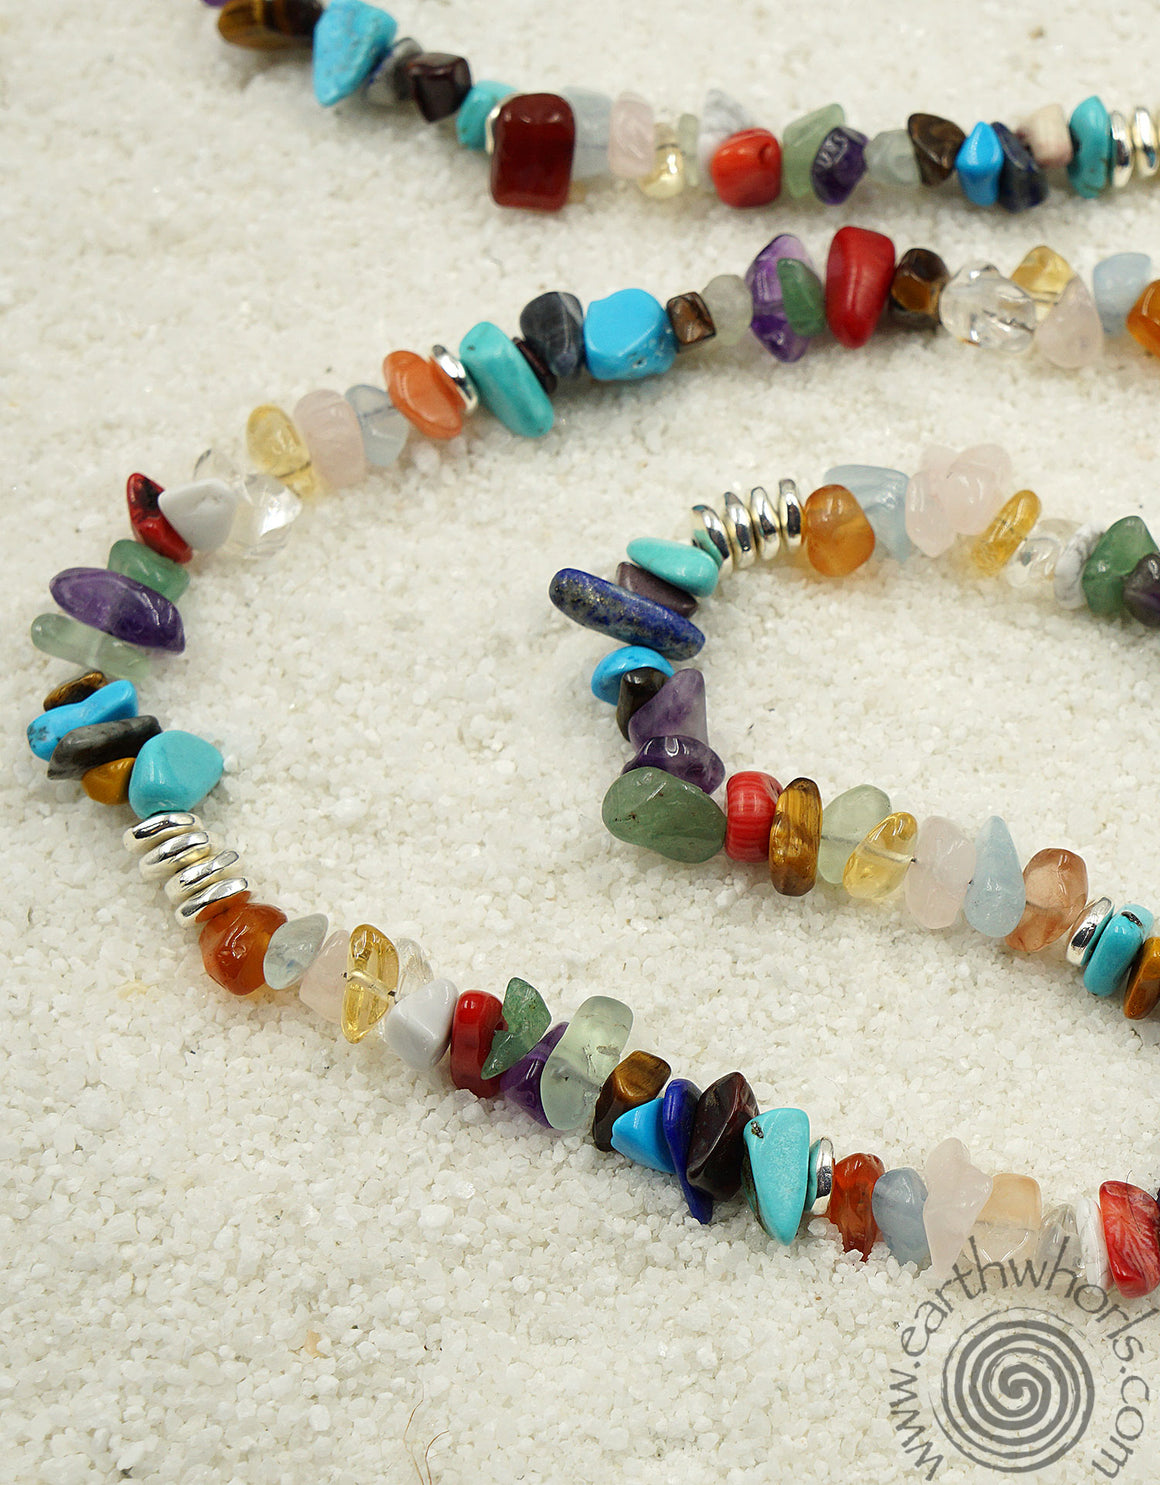 Chakra Stone, Healing Stone, Mixed Stone & Sterling Silver Necklace - EarthWhorls, LLC